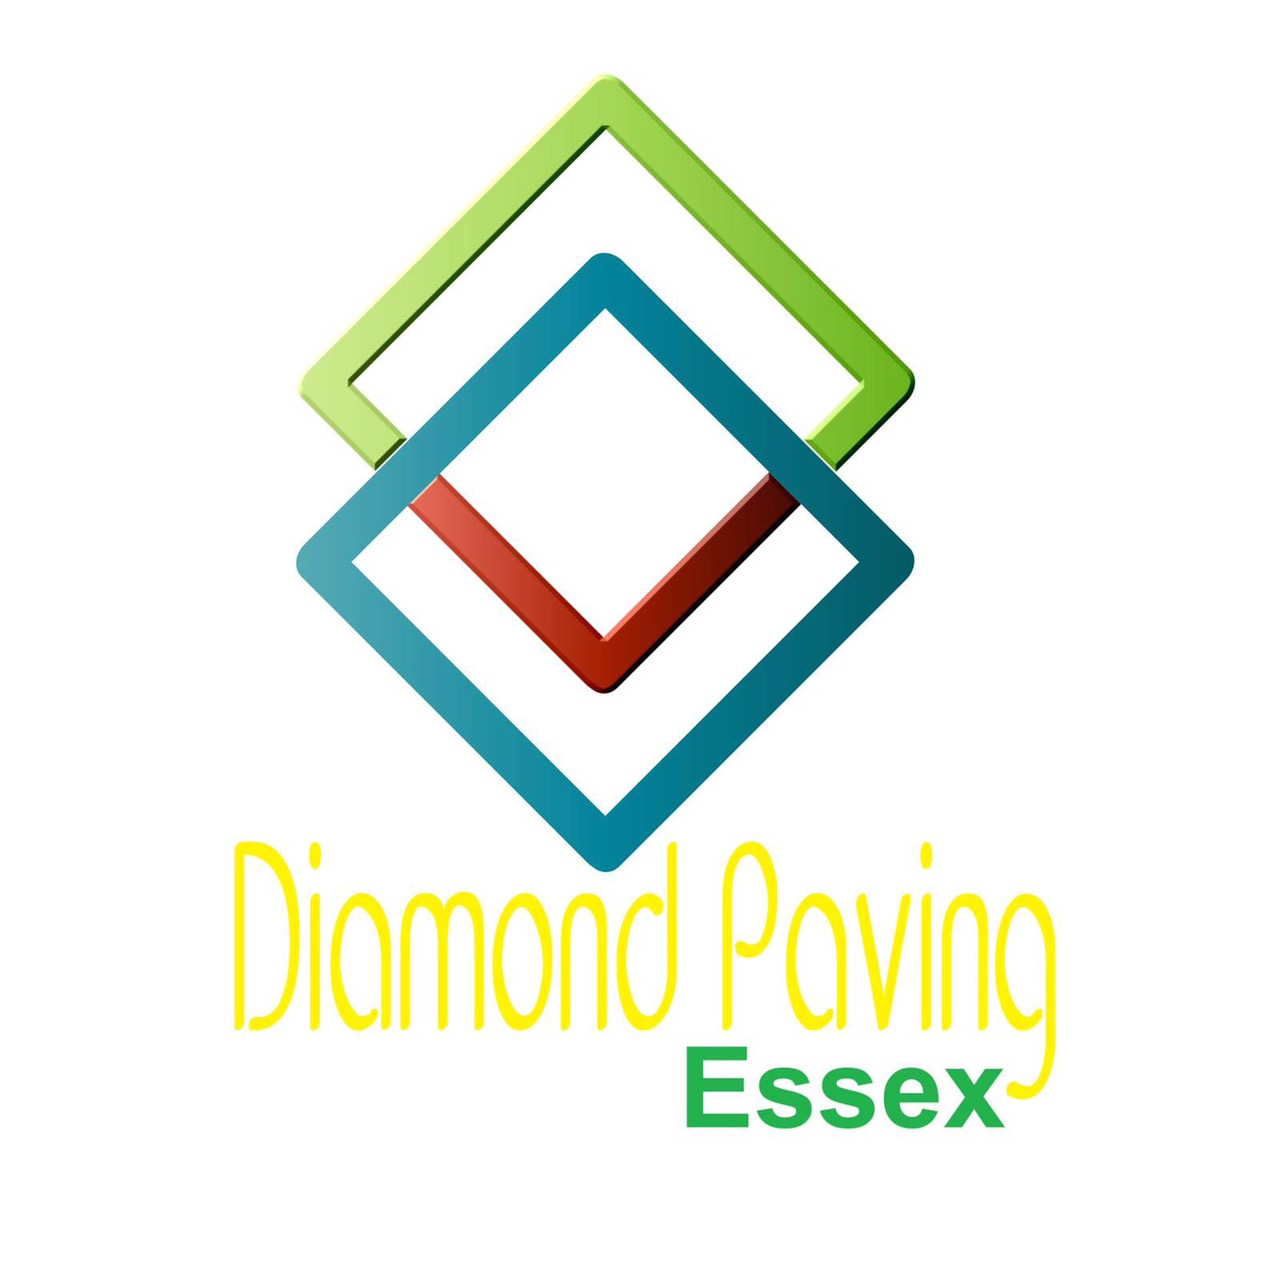 Diamond Paving Essex LTD